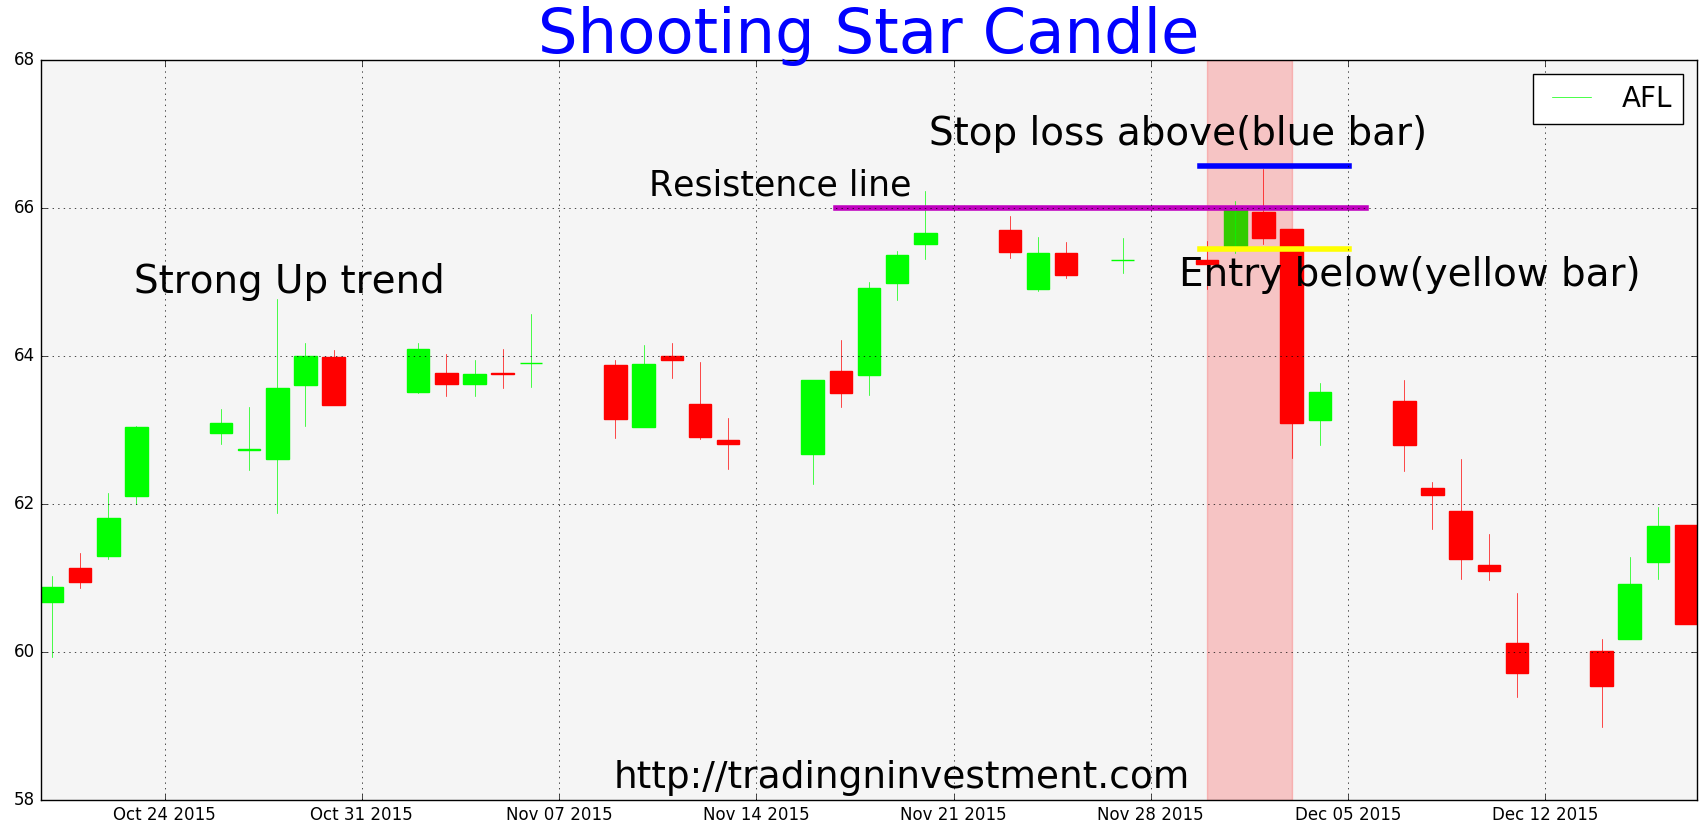 Shooting Star candlestick Shooting Star candle is a bearish reversal